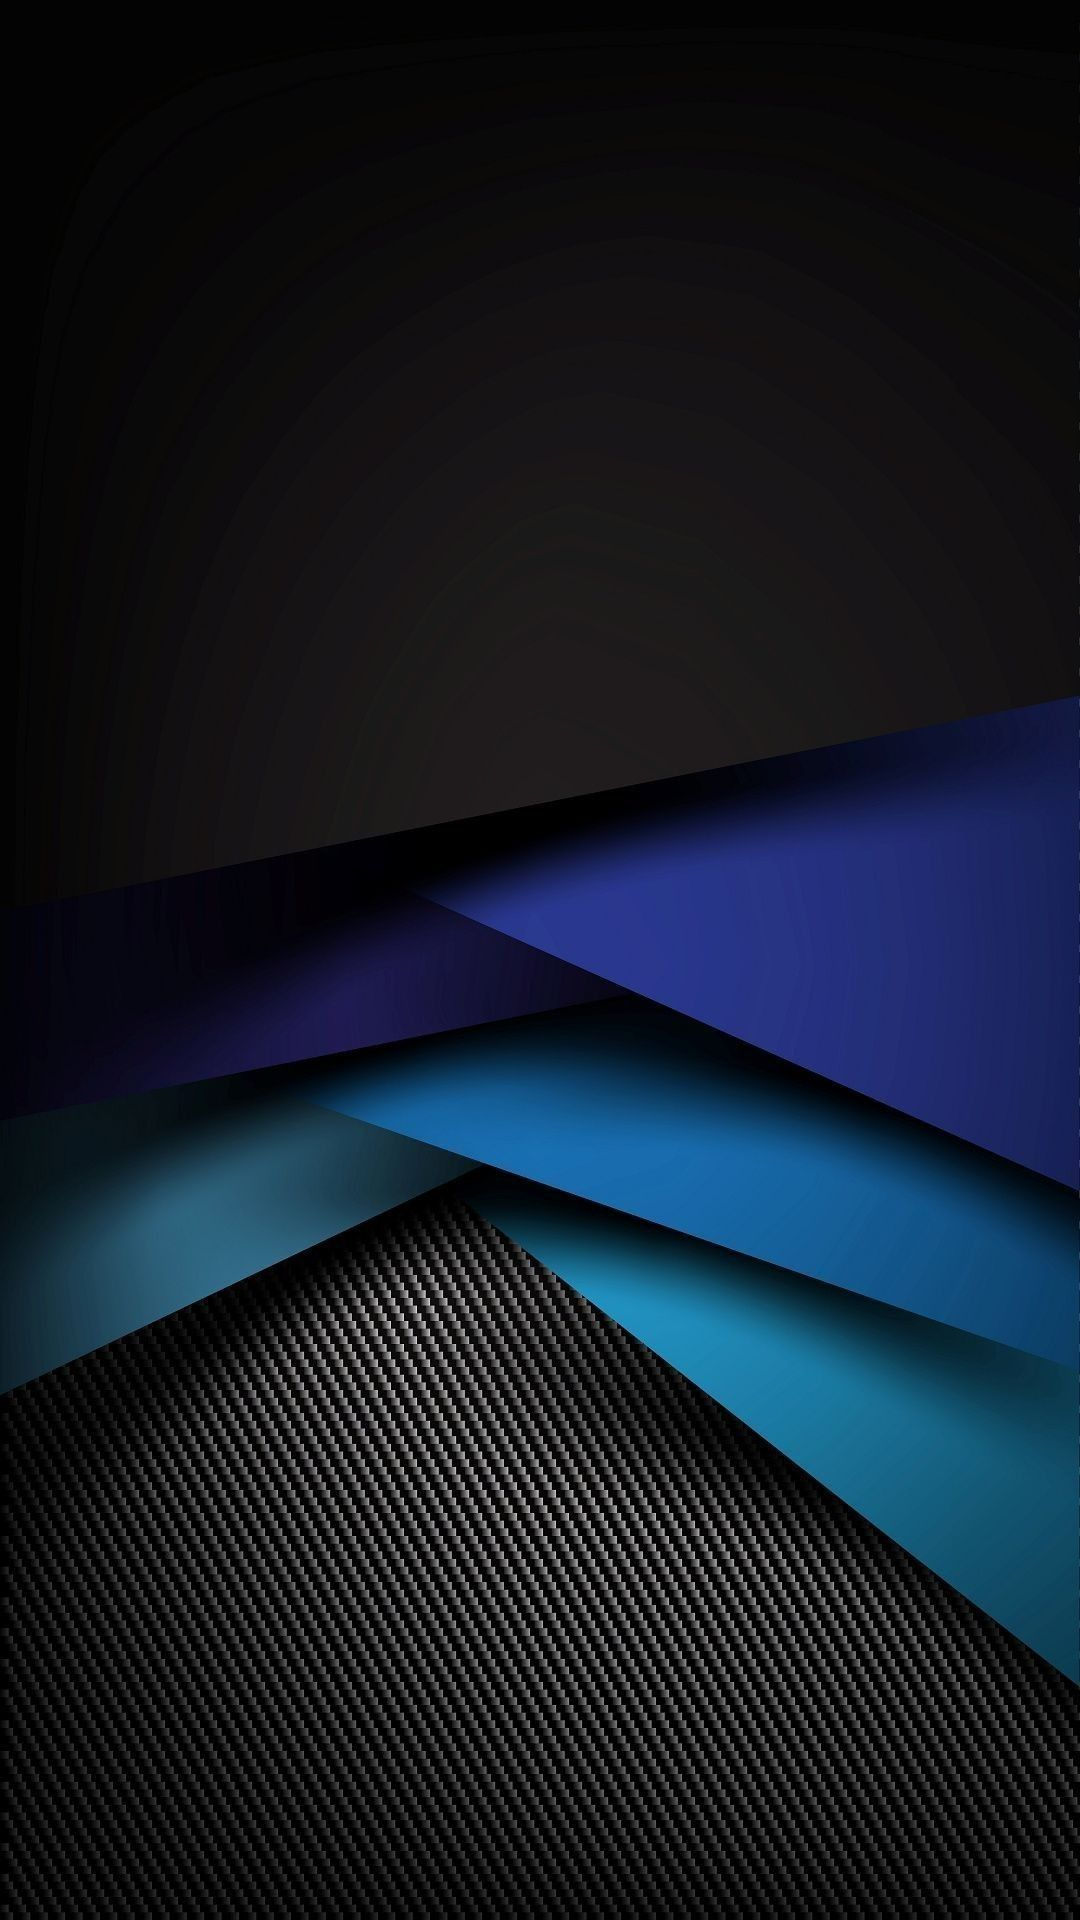 1080x1920 87+ Geometric Iphone Wallpapers on WallpaperPlay